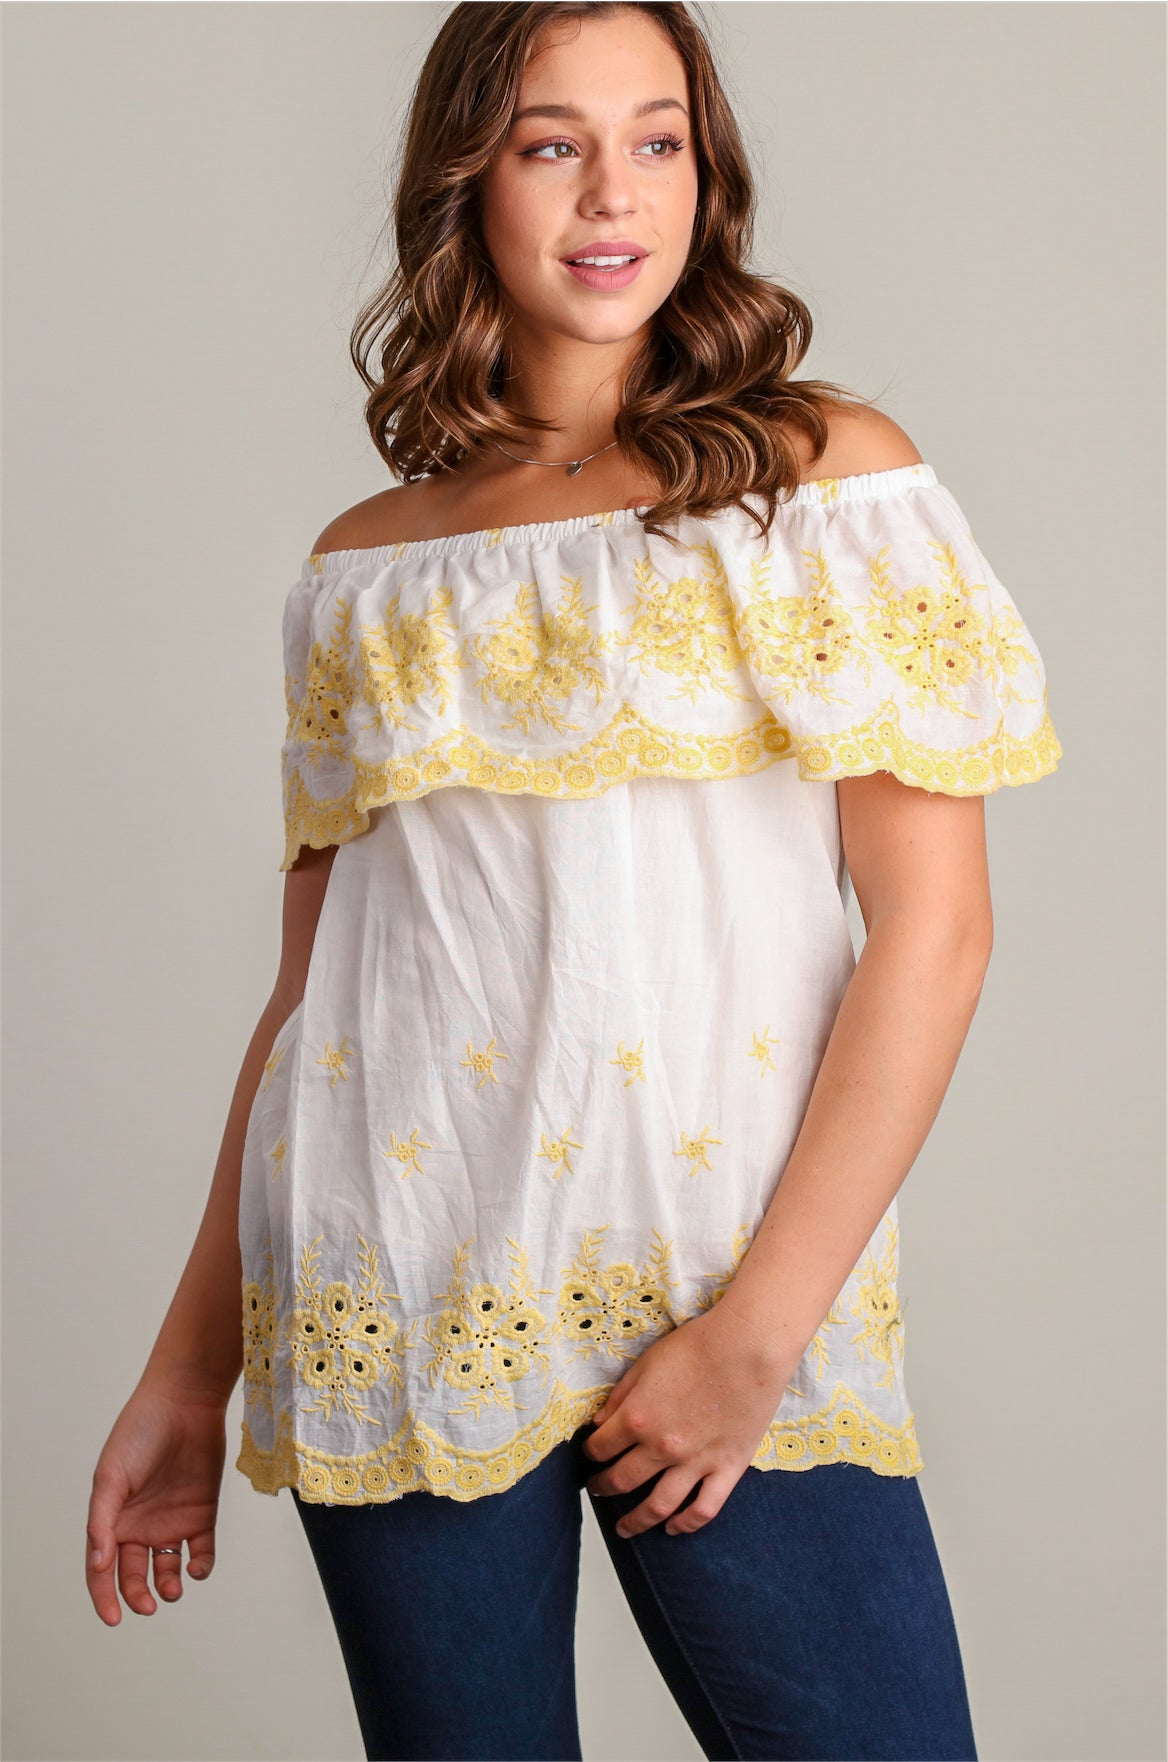 White/Yellow Eyelet Embroidery Peasant